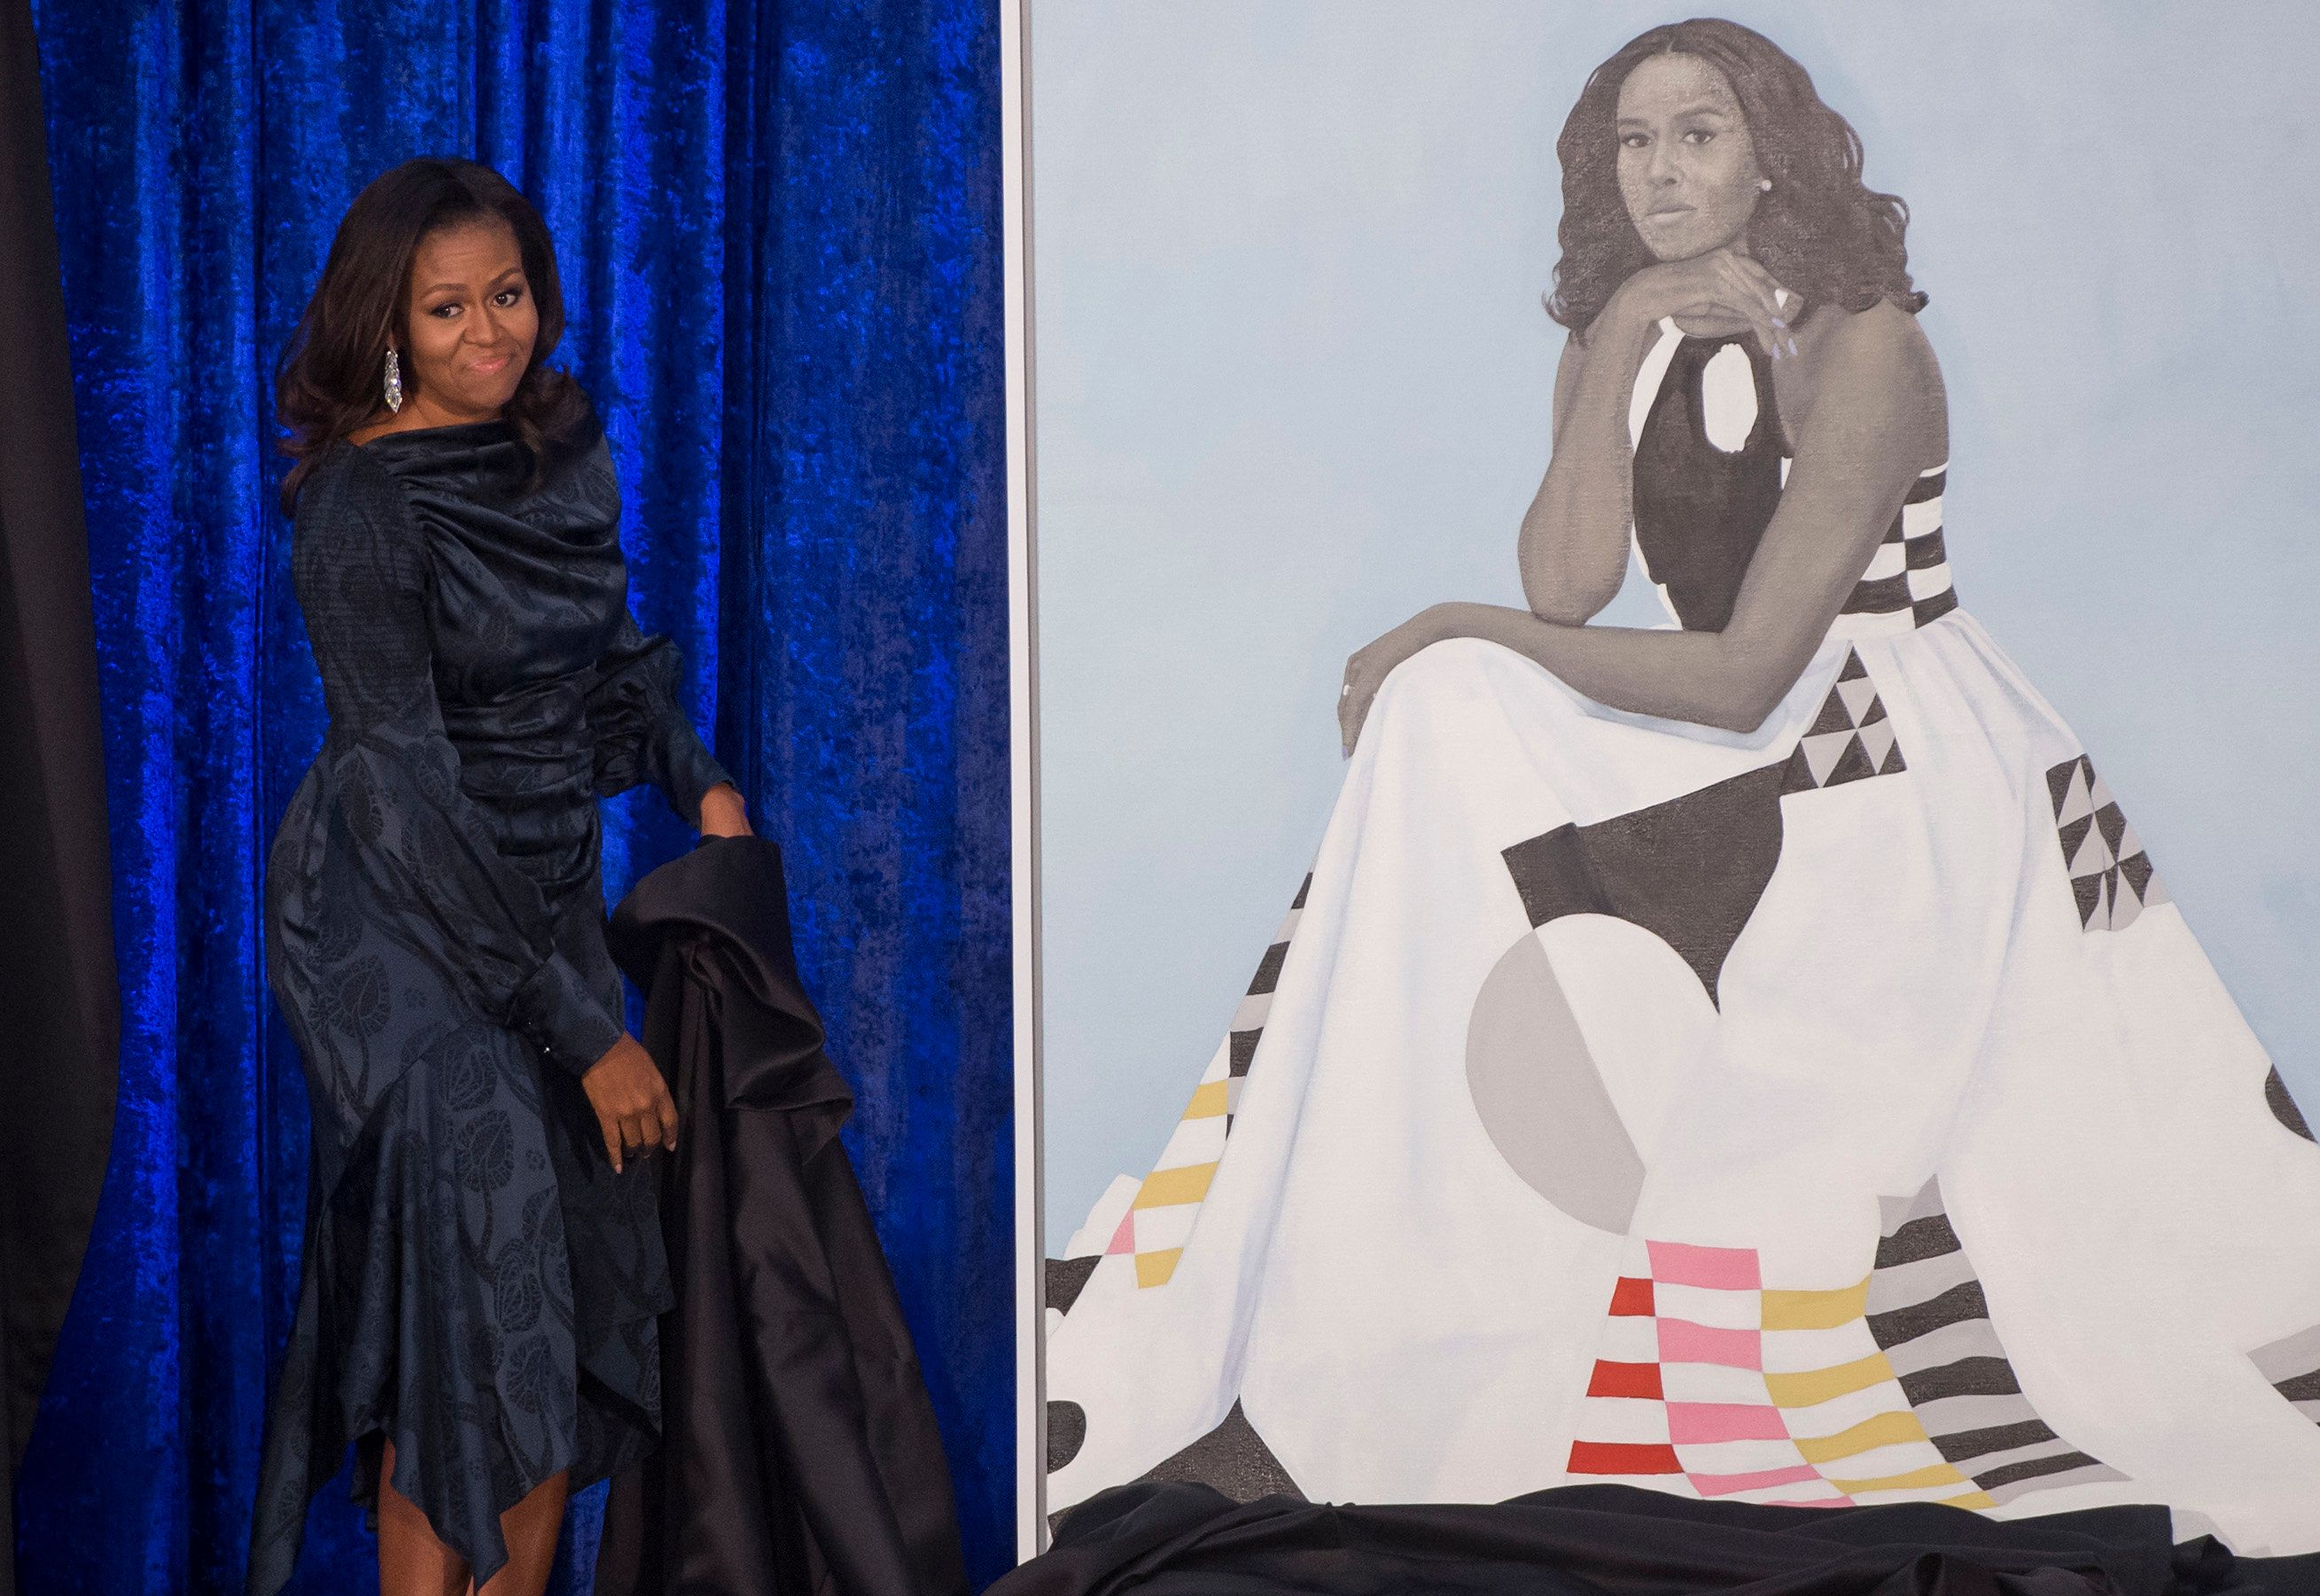 Former US First Lady Michelle Obama unveils her portrait at the Smithsonian's National Portrait Gallery in Washington, DC, February 12, 2018. / AFP PHOTO / SAUL LOEB / RESTRICTED TO EDITORIAL USE - MANDATORY MENTION OF THE ARTIST UPON PUBLICATION - TO ILLUSTRATE THE EVENT AS SPECIFIED IN THE CAPTION        (Photo credit should read SAUL LOEB/AFP/Getty Images)